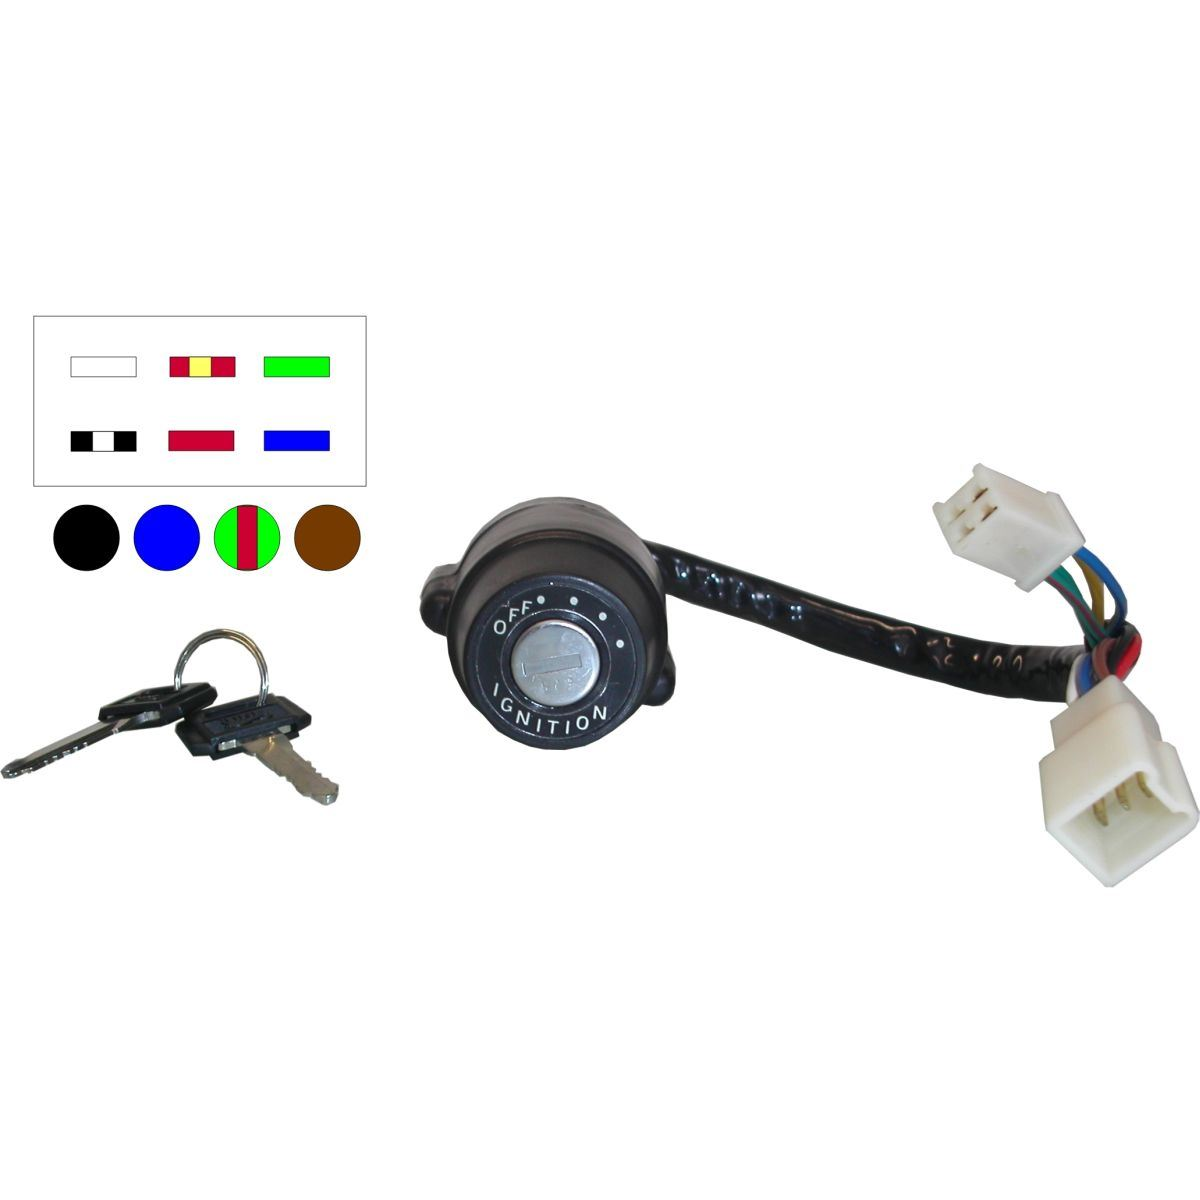 Aw Motorcycle Parts  Ignition Switch Yamaha Rs100  Rs125